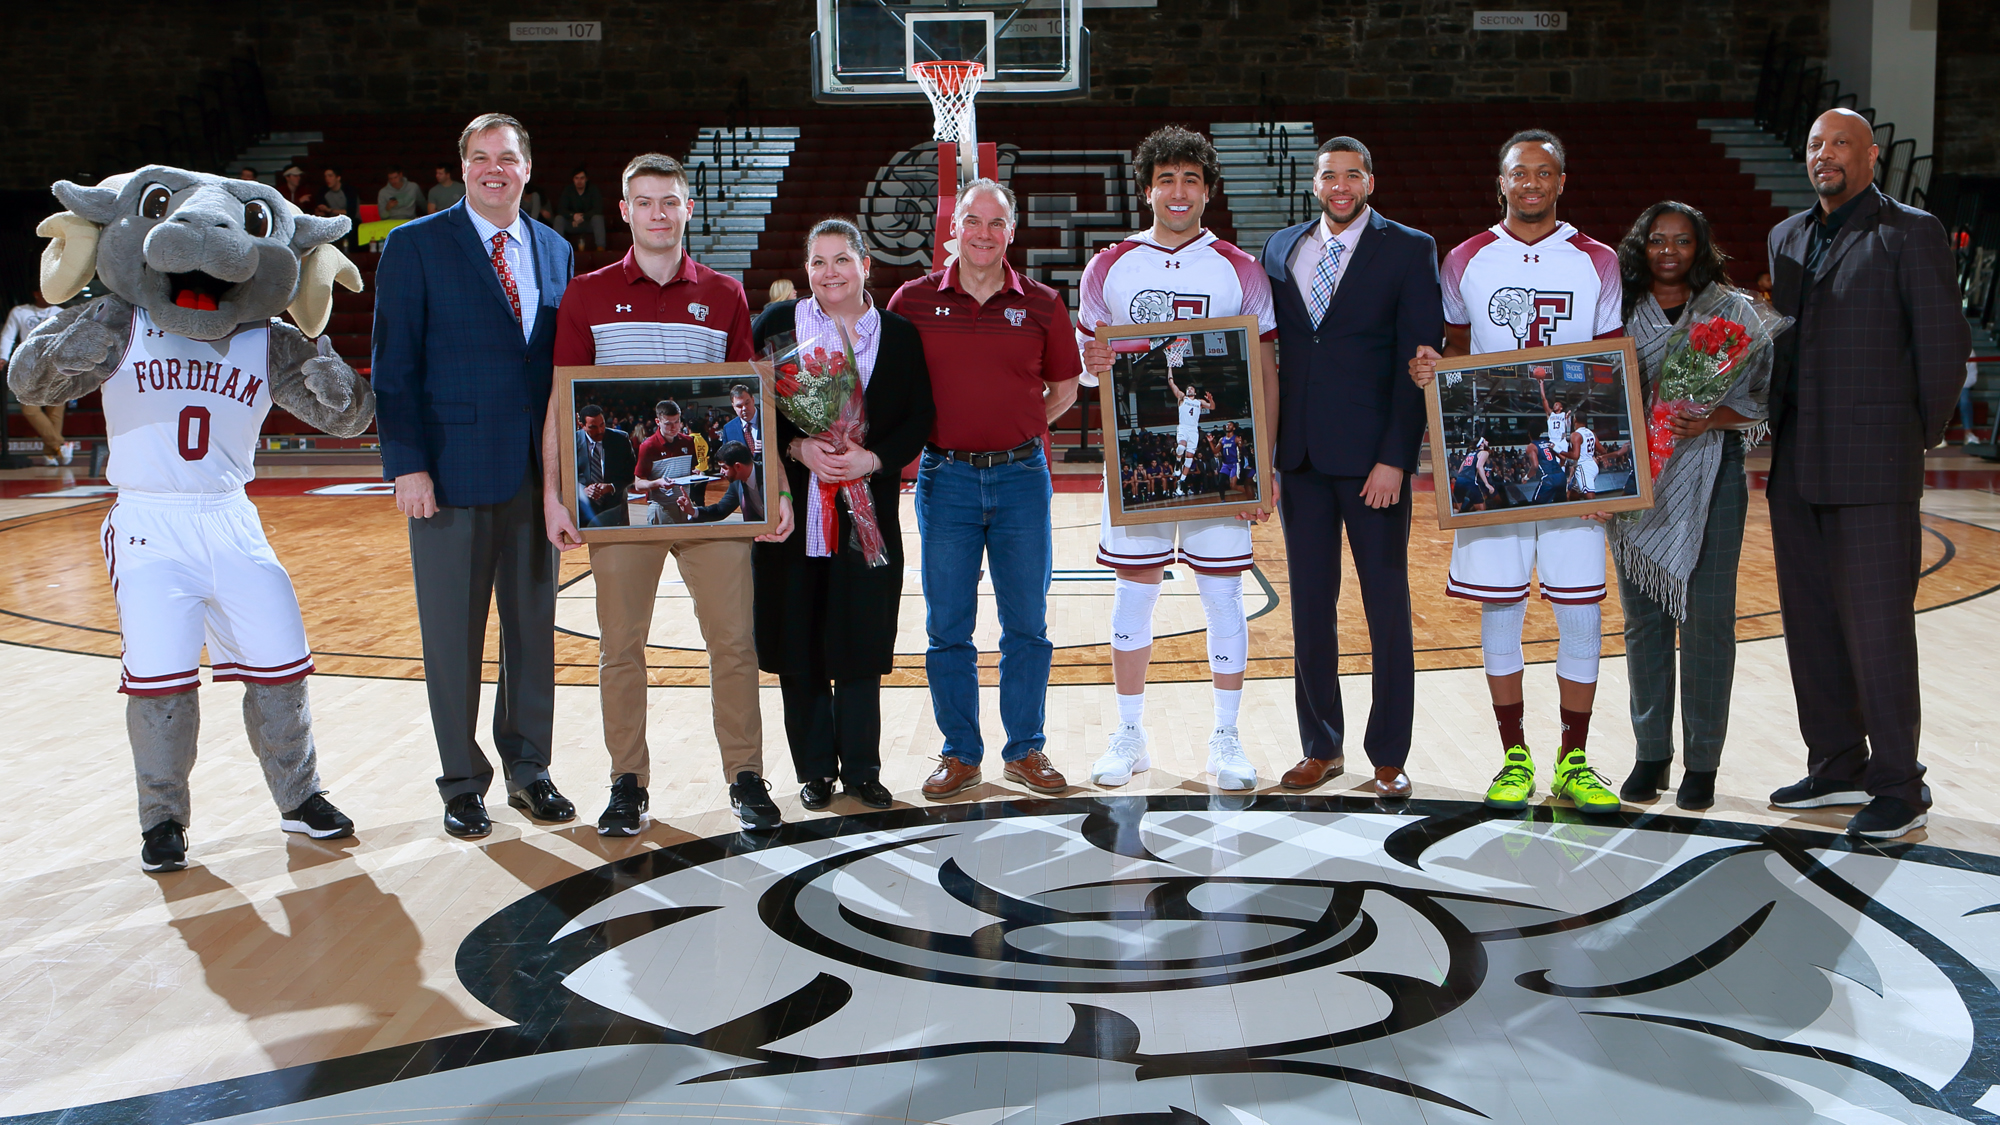 The Fordham seniors and their families